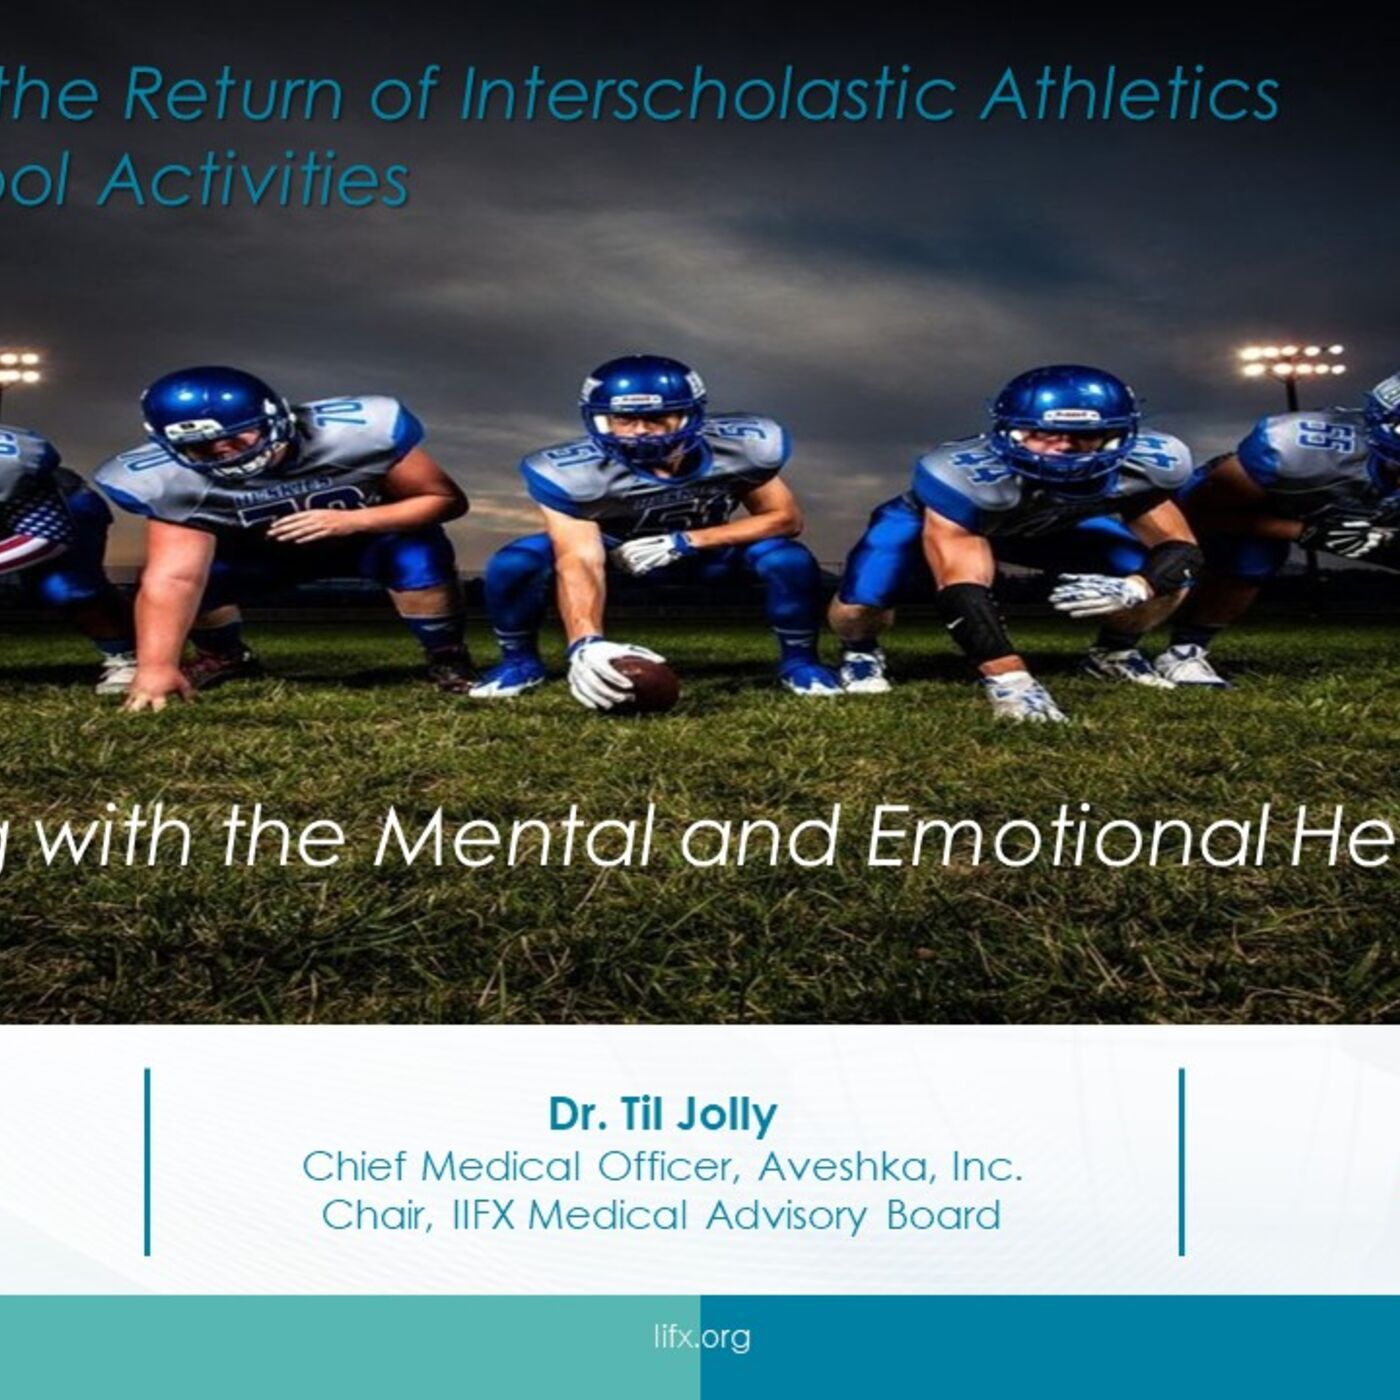 Session 6 - Dealing with Mental and Emotional Health Issues